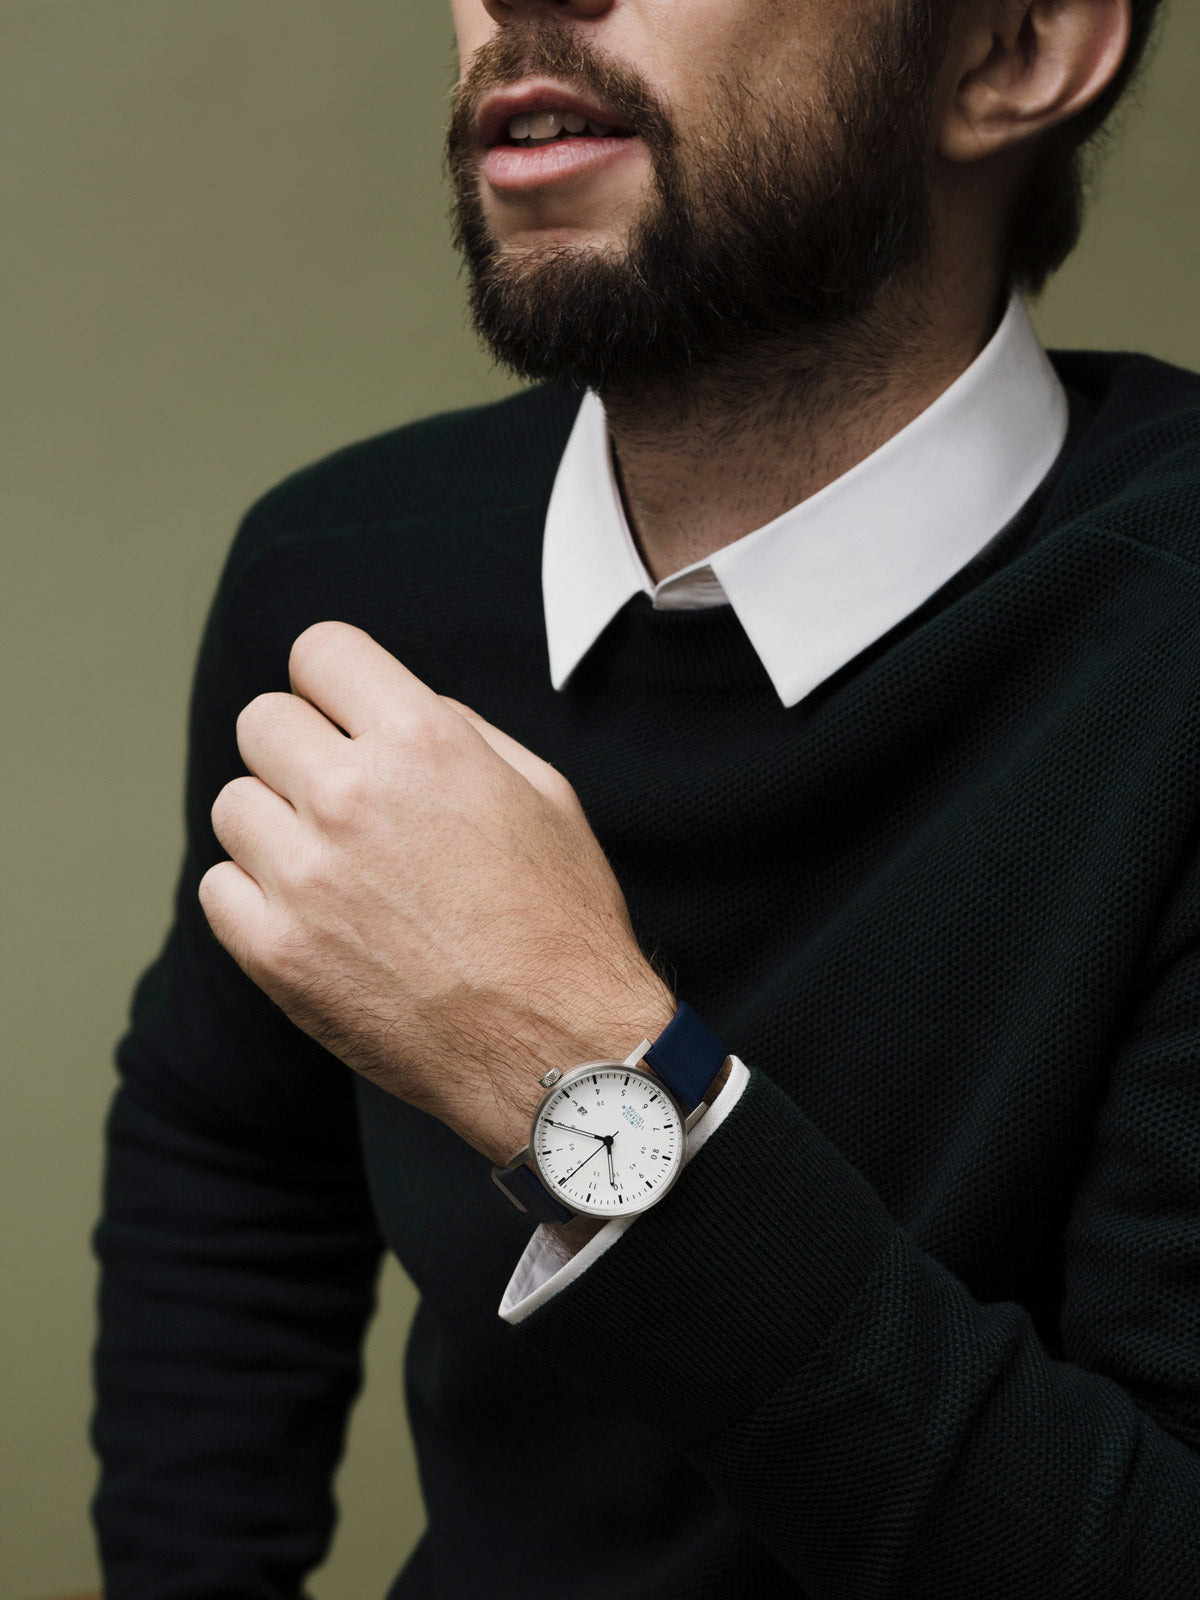 The Limited Edition railway Stockholm watch designed by Swedish designer David Ericsson. V03D-STHLM.